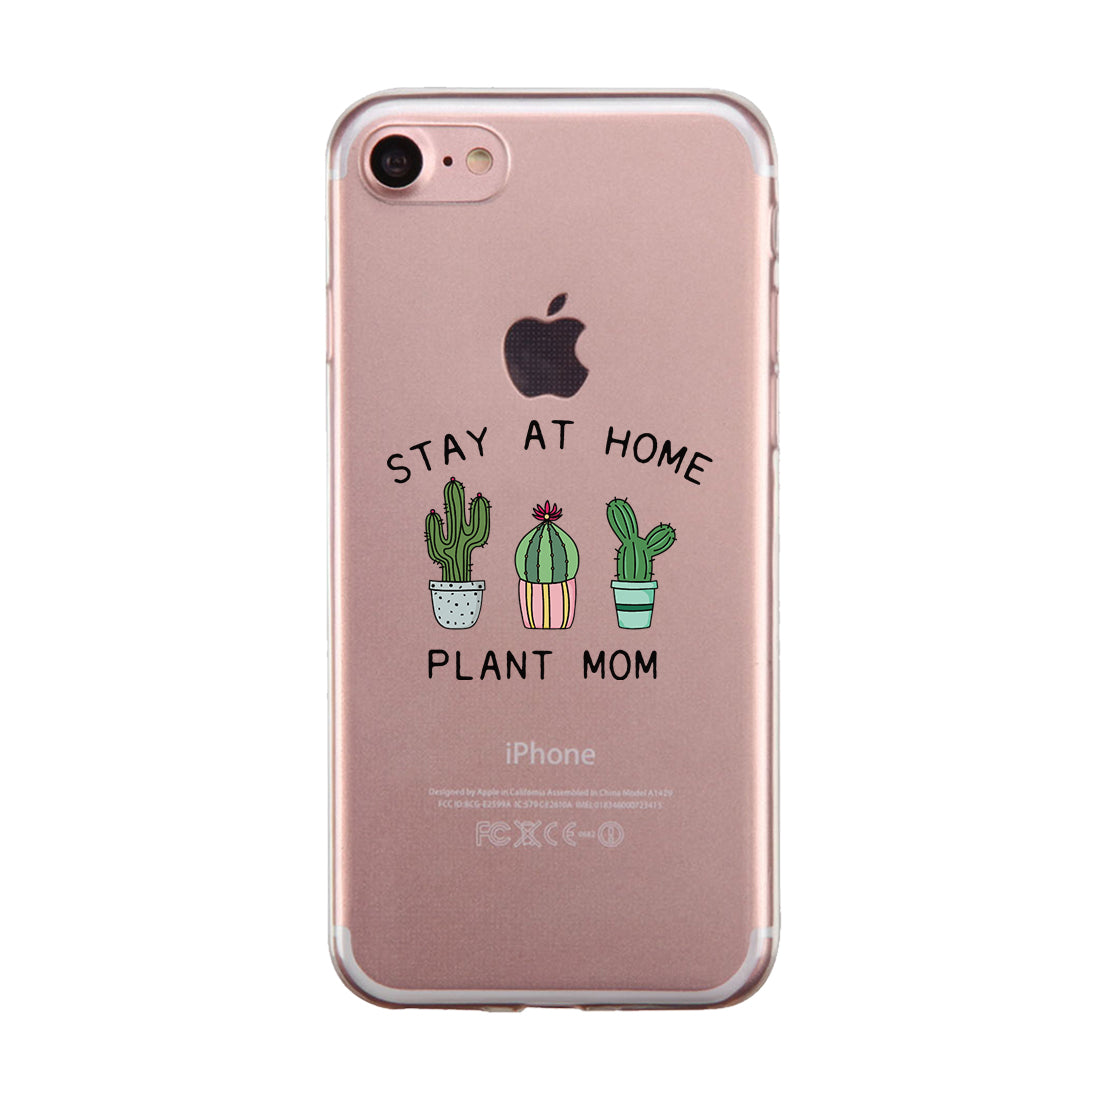 Stay At Home Plant Mom Clear Phone Case Funny Birthday Gifts